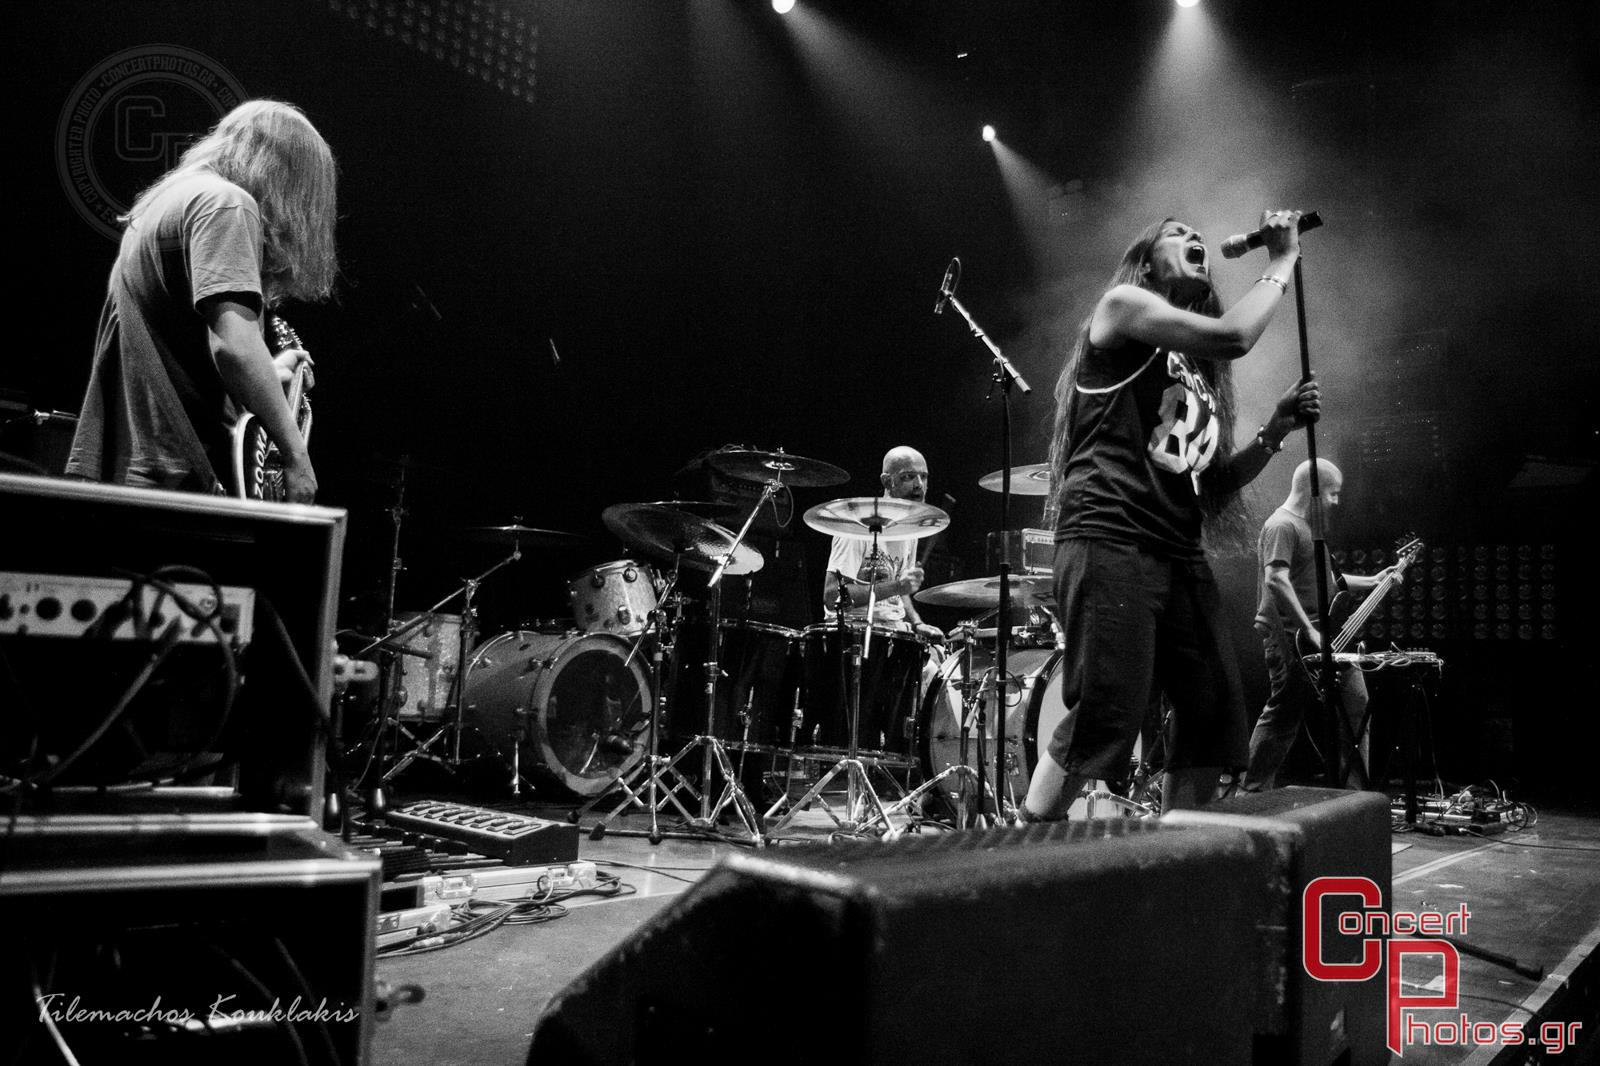 Neurosis-Neurosis photographer:  - concertphotos_20140707_23_56_49